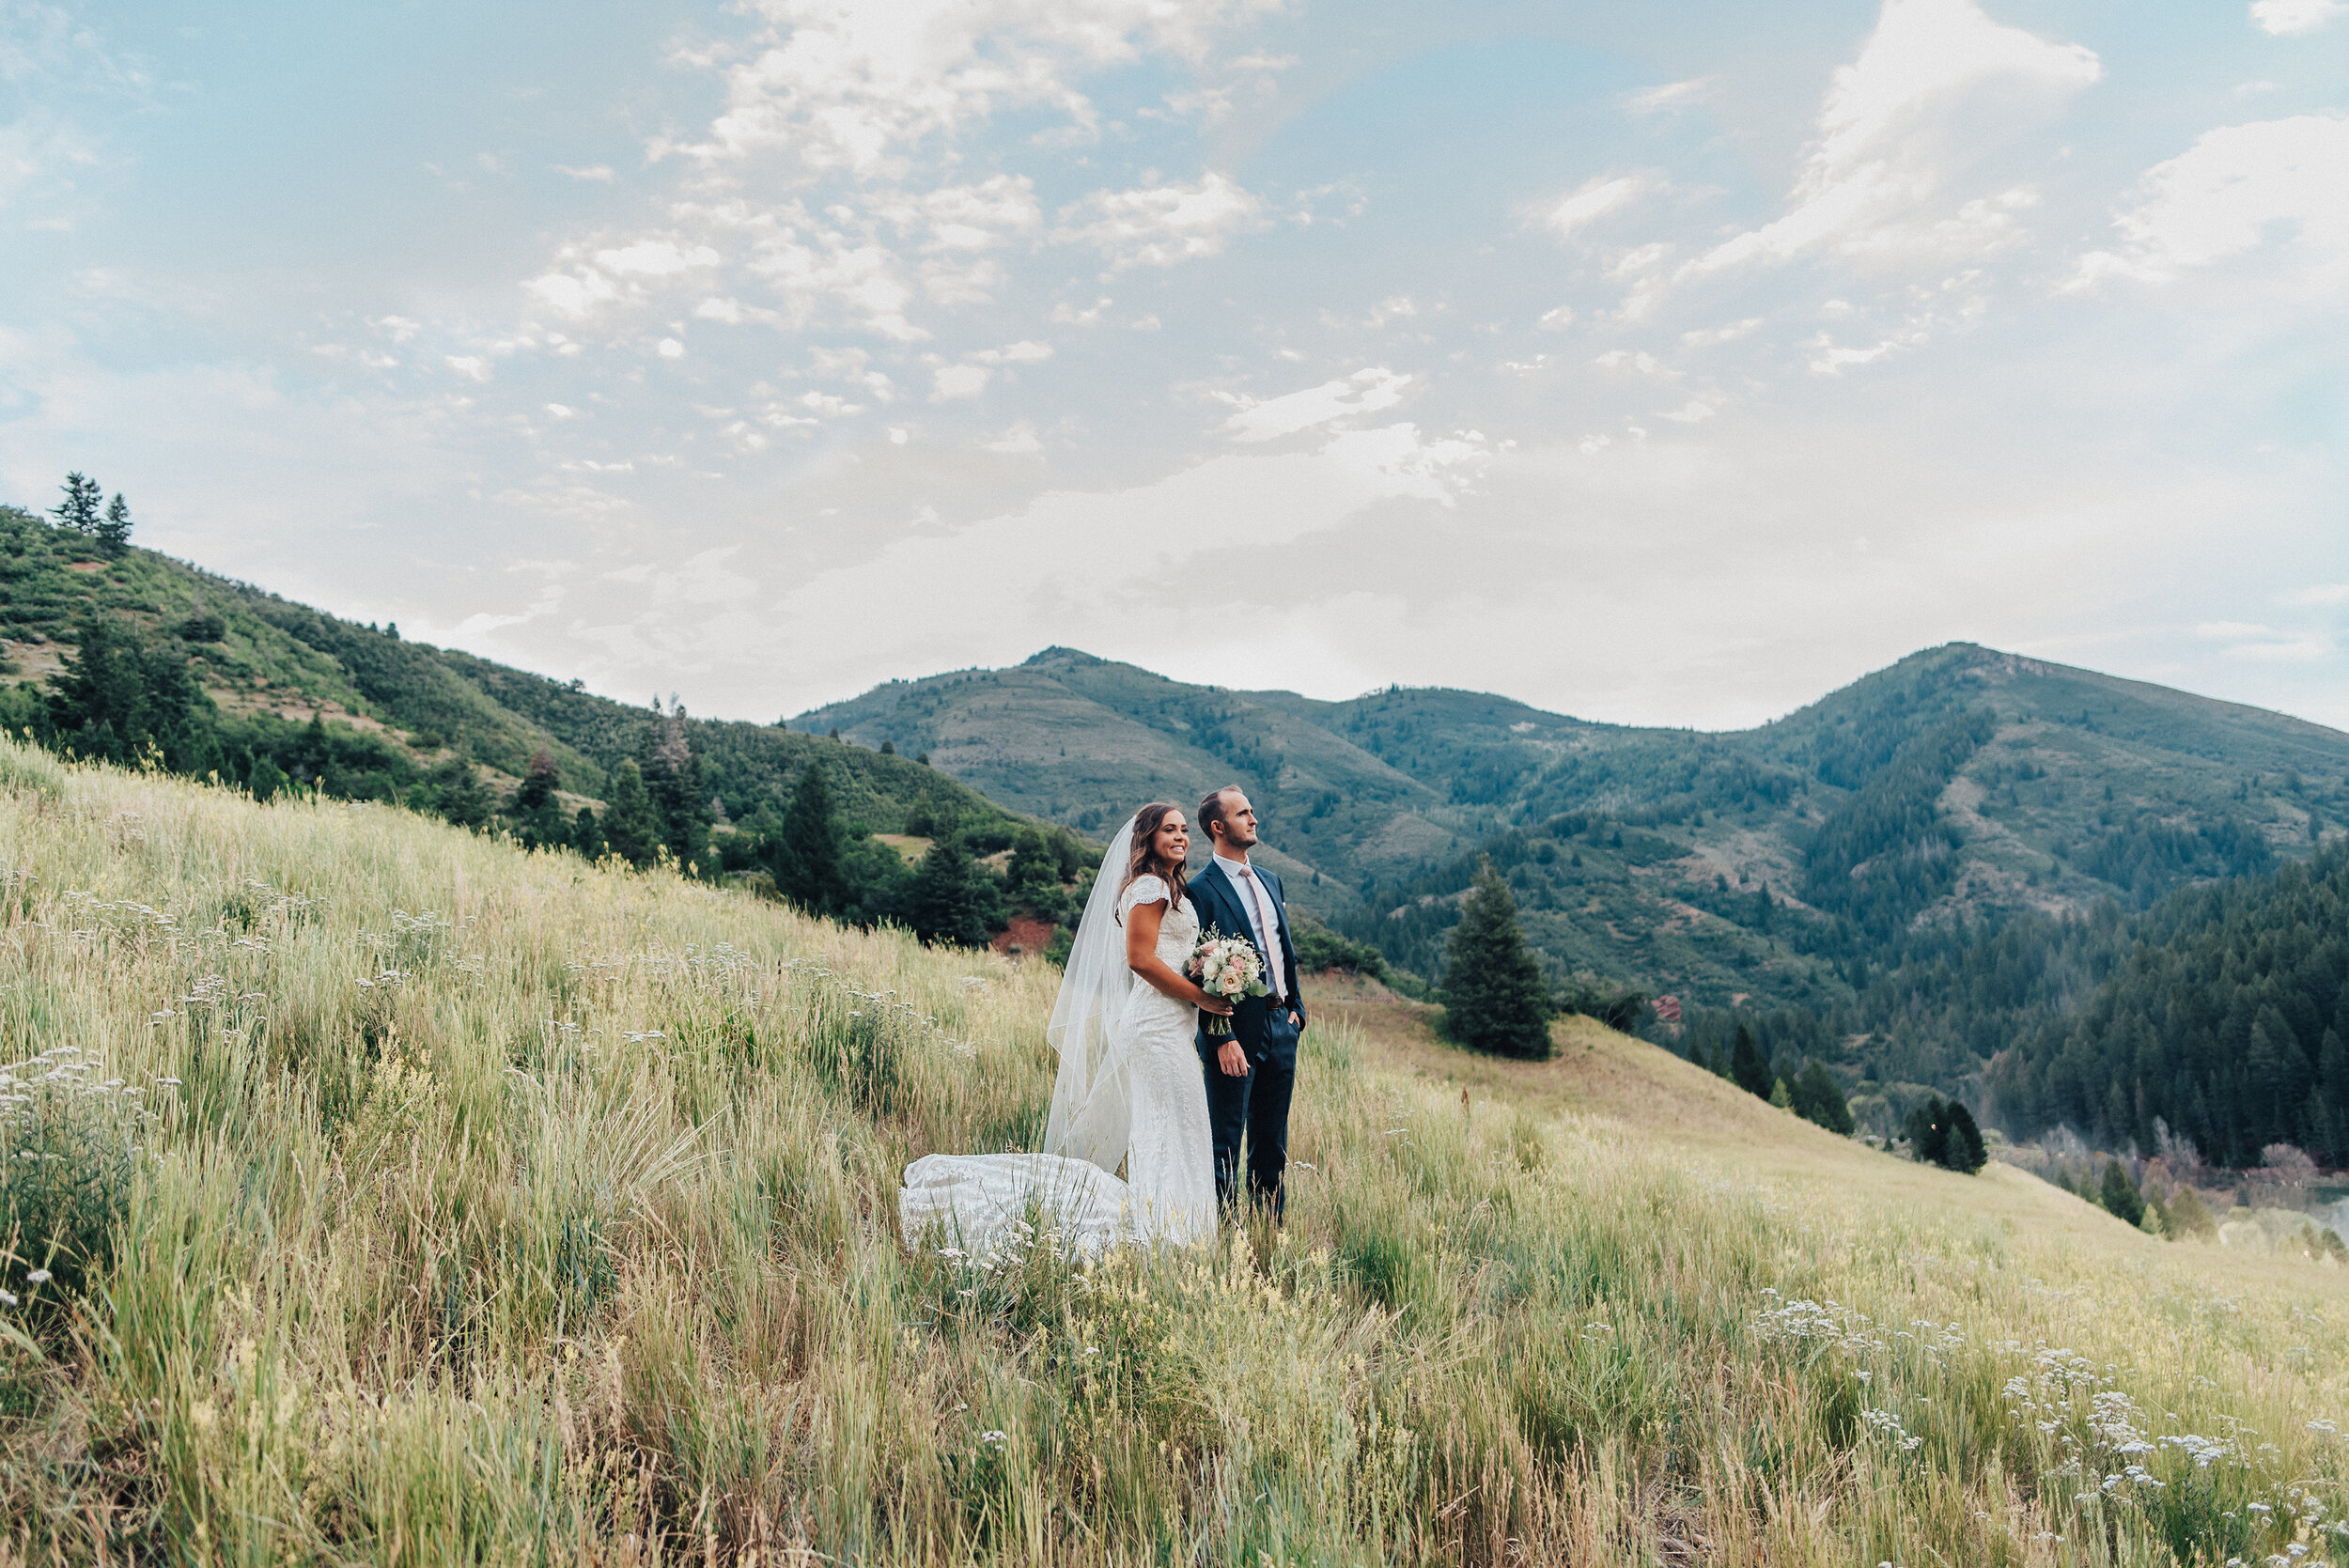 A beautiful couple overlook the Tibble Fork Reservoir while standing on a gorgeous grassy hillside in American Fork Canyon. Mountains in the background evergreen trees couple posed looking forward utah photography wide landscape tall grass navy suit light pink bouquet #husbandandwife #younglove #tibbleforkreservoir #utahwedding #americanforkcanyon #coupleshoot #formals #weddingphotography #couplesgoals #couplephotography #weddingphotographer #couplesphotography #groom #bride